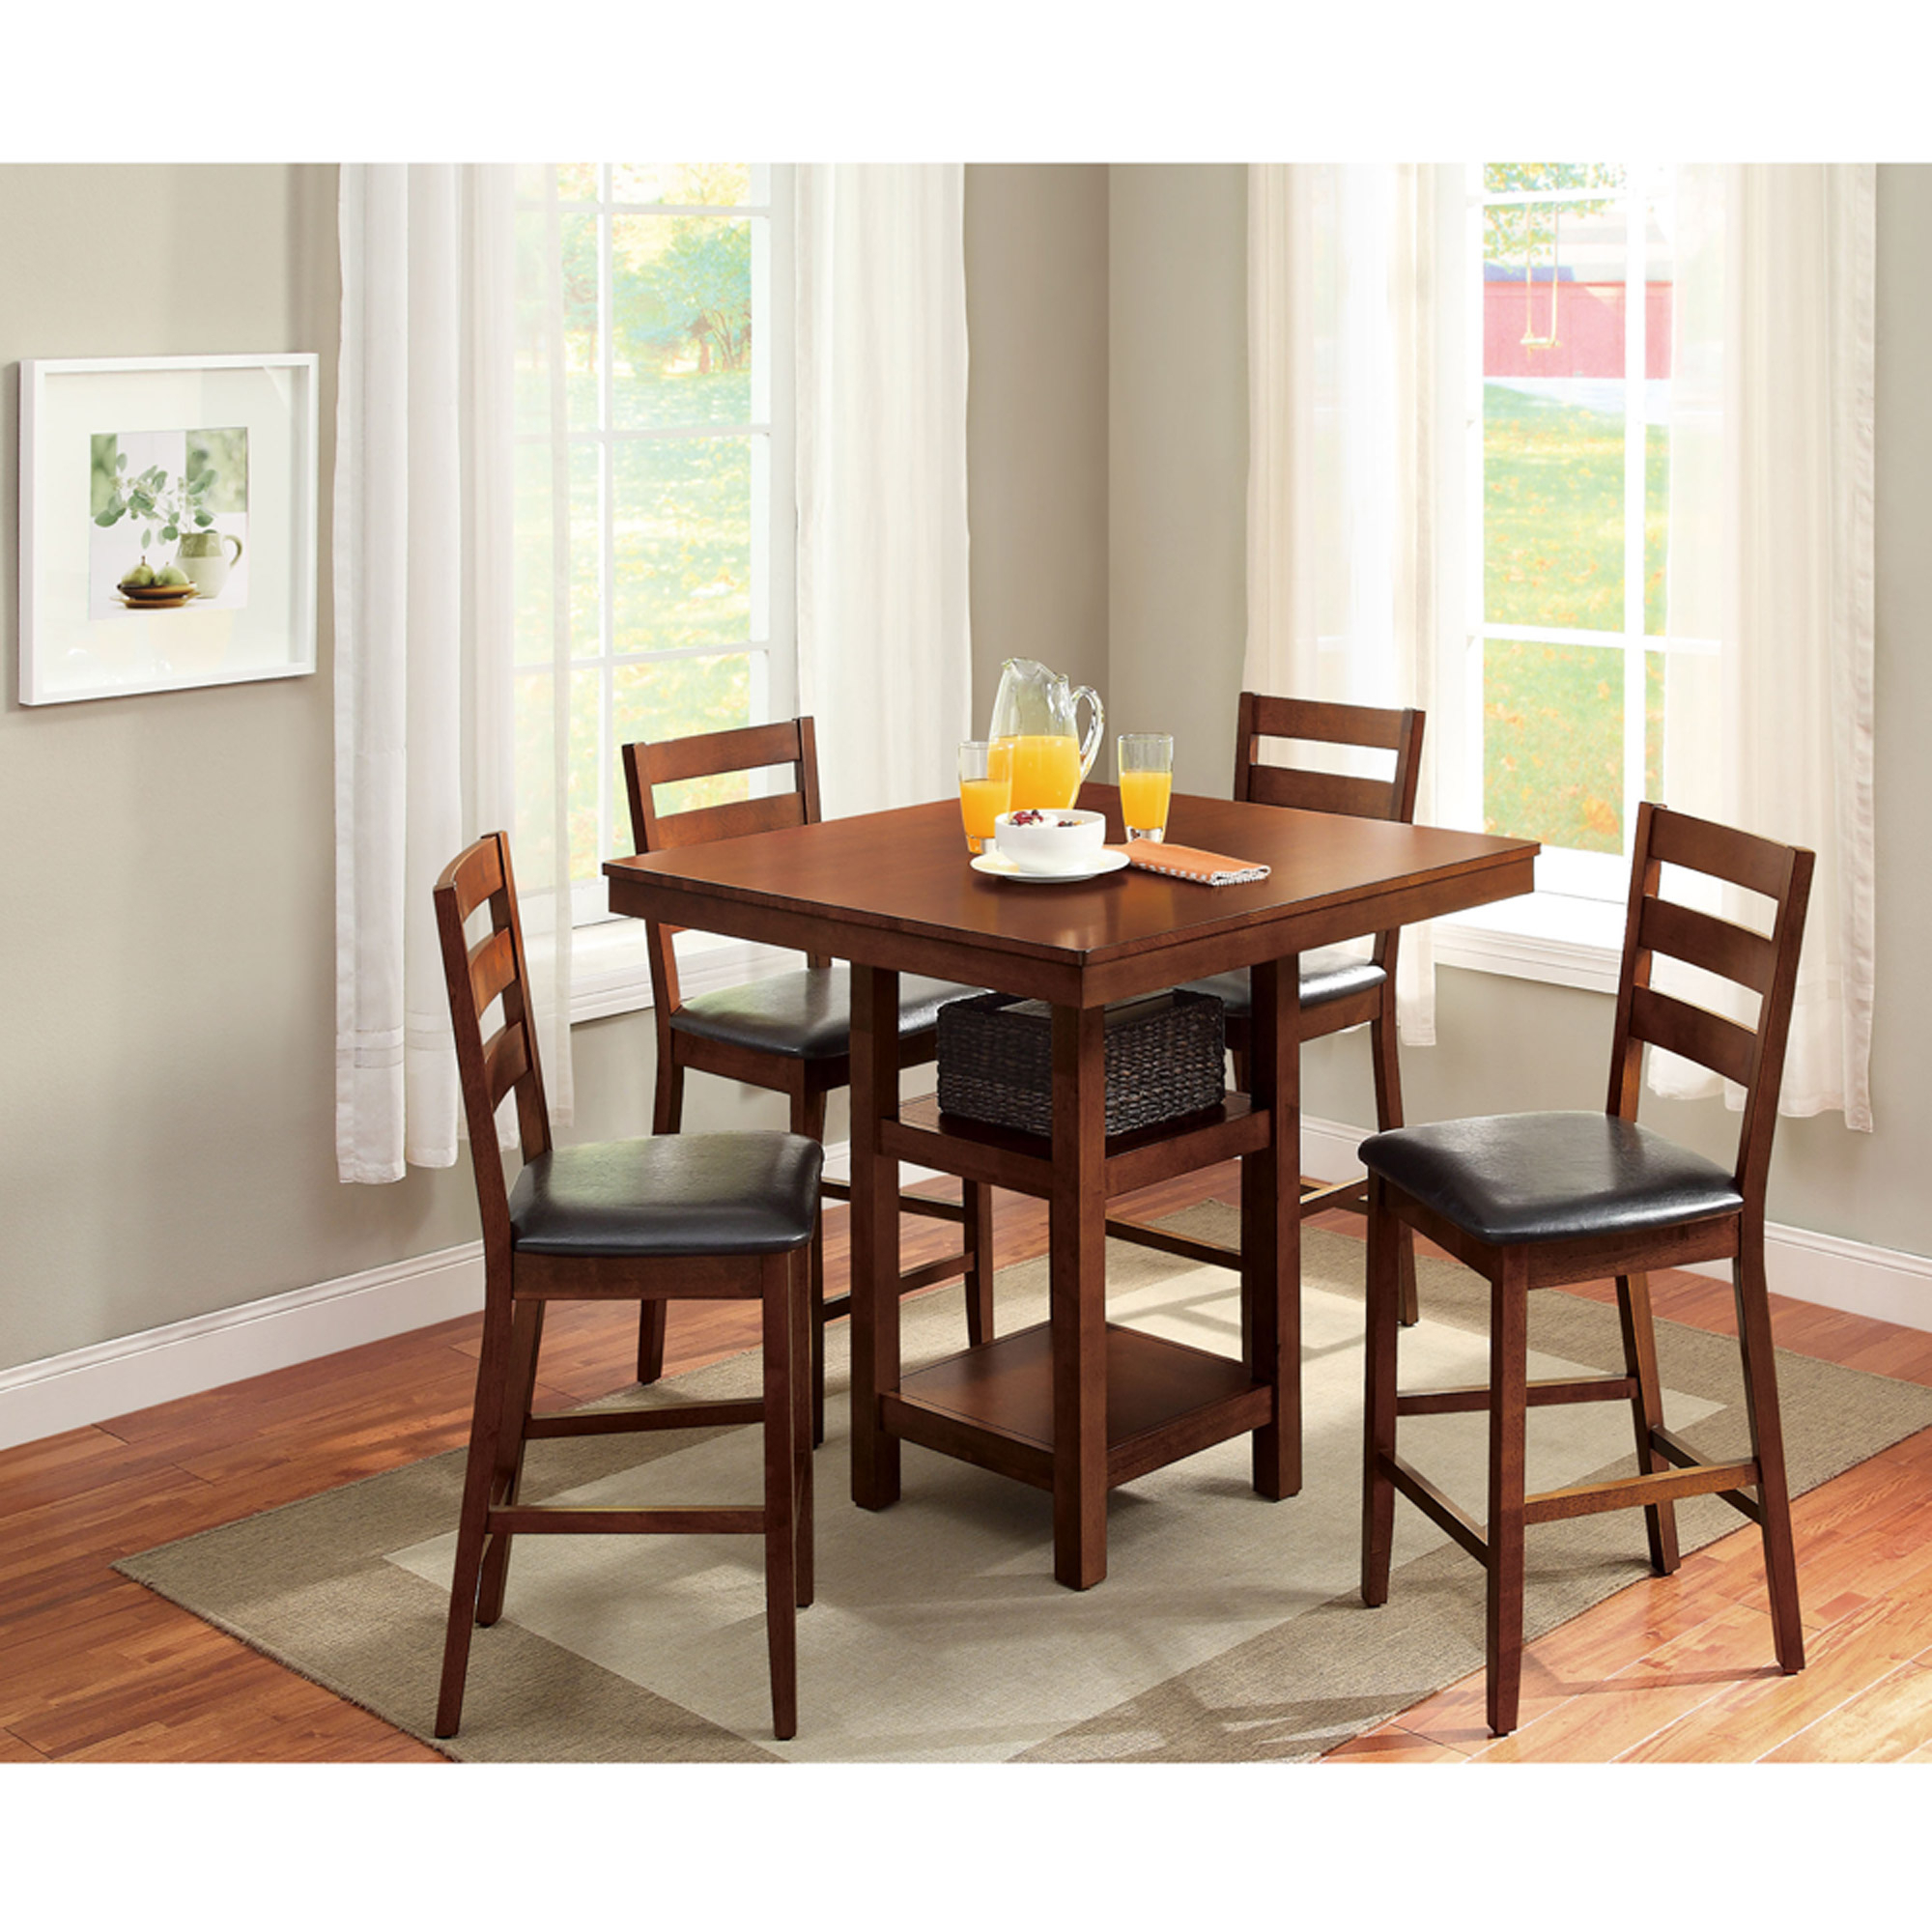 Metropolitan 3 Piece Dining Set, Multiple Finishes For Newest Rossiter 3 Piece Dining Sets (View 12 of 20)